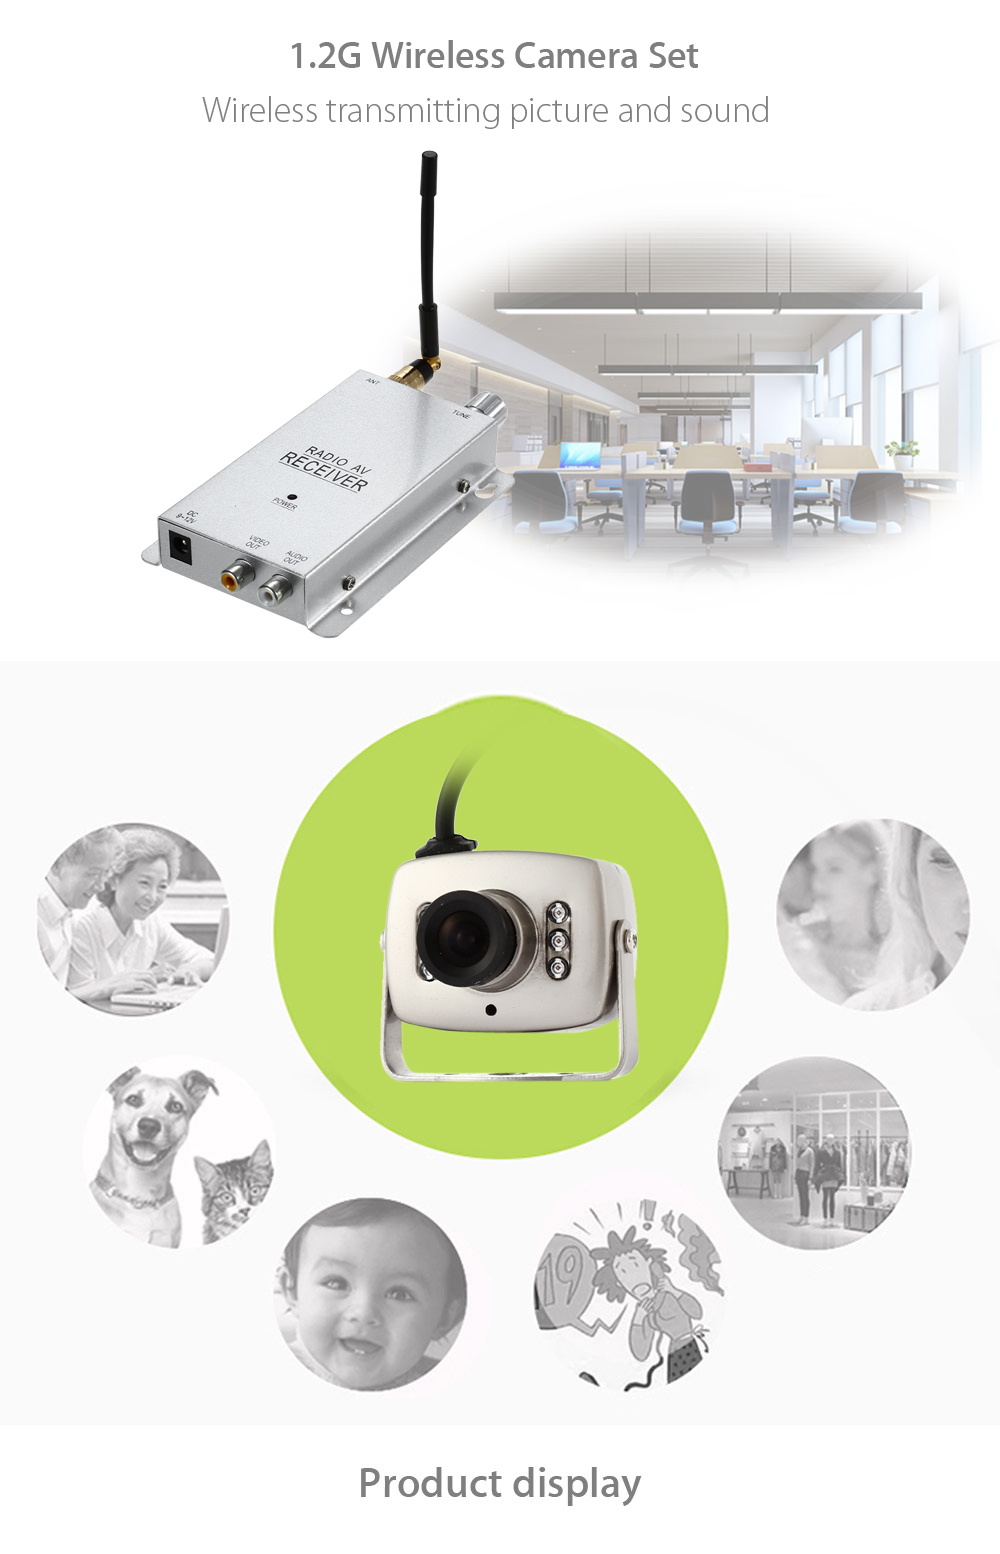 208C Wireless Camera Kit 1.2G with Night Vision